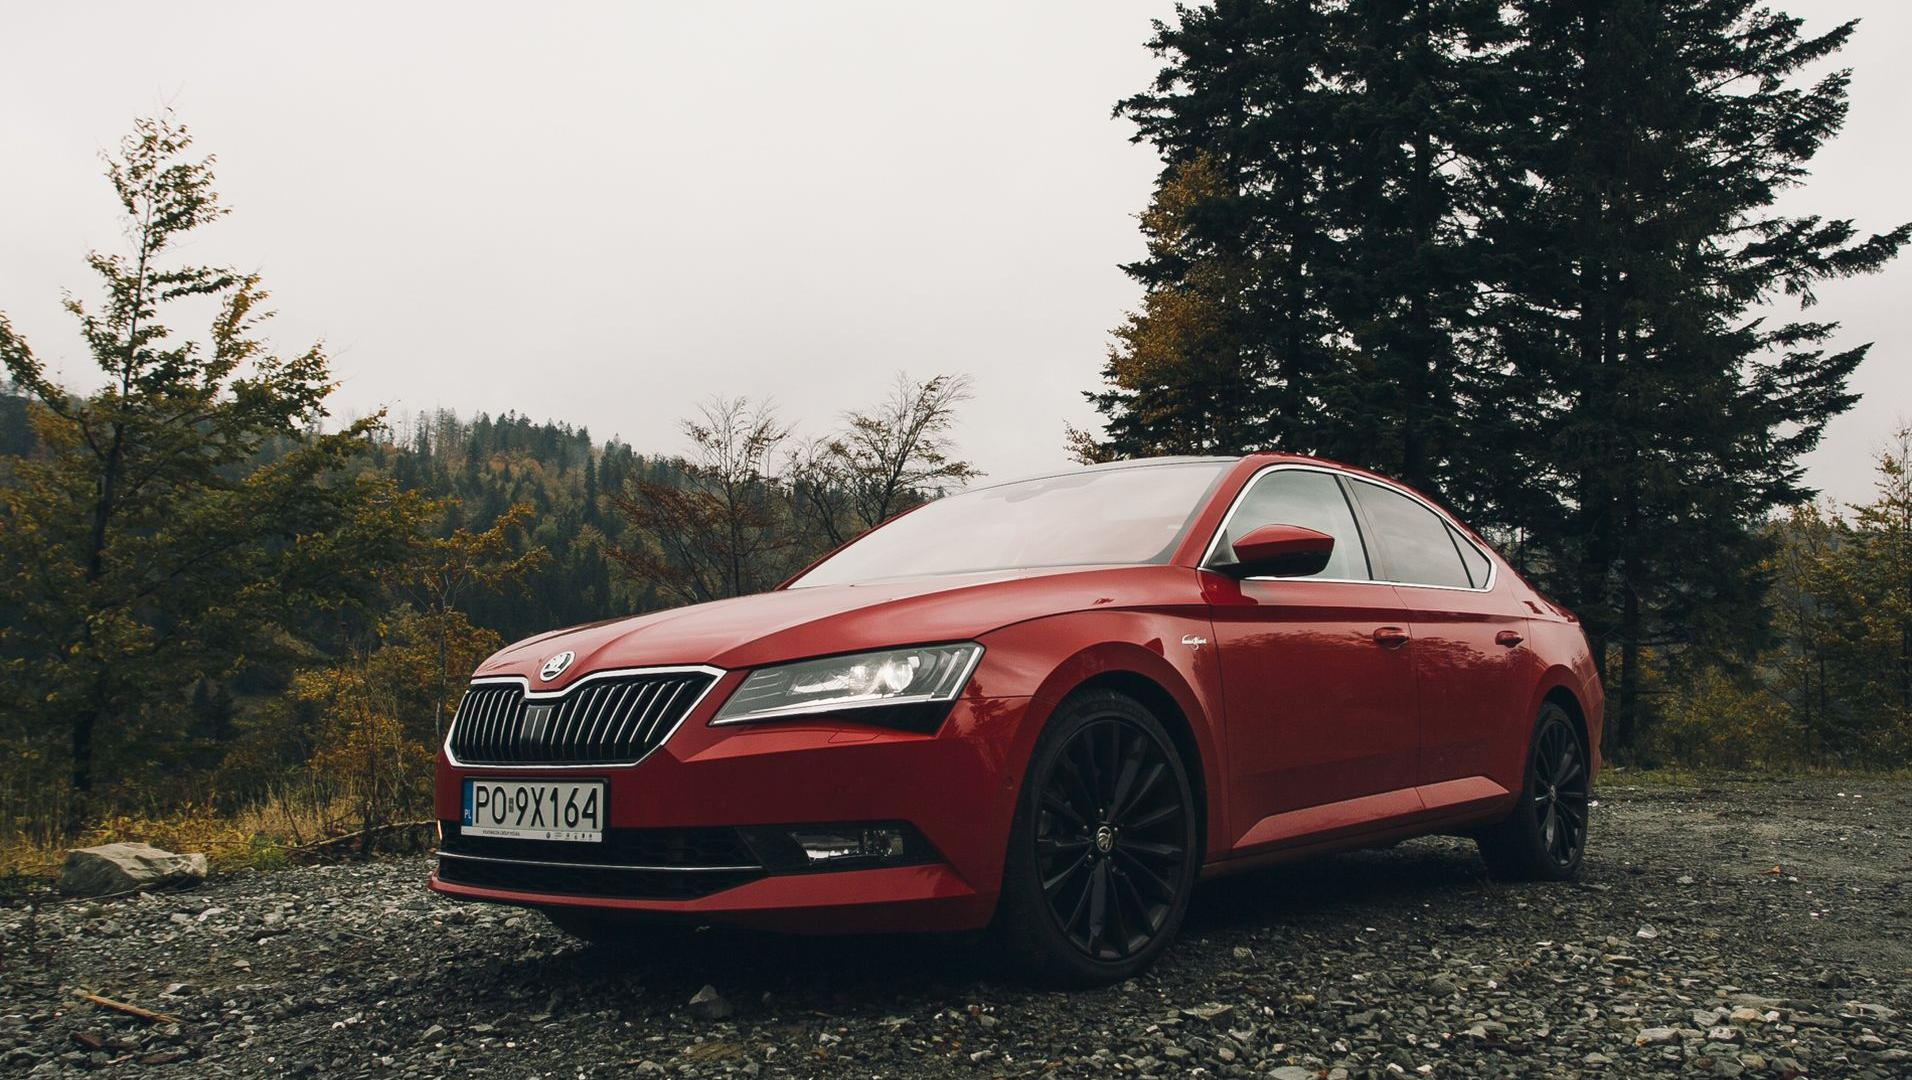 hight resolution of skoda superb laurin klement 2 0 tsi 280 km galeria redakcyjna